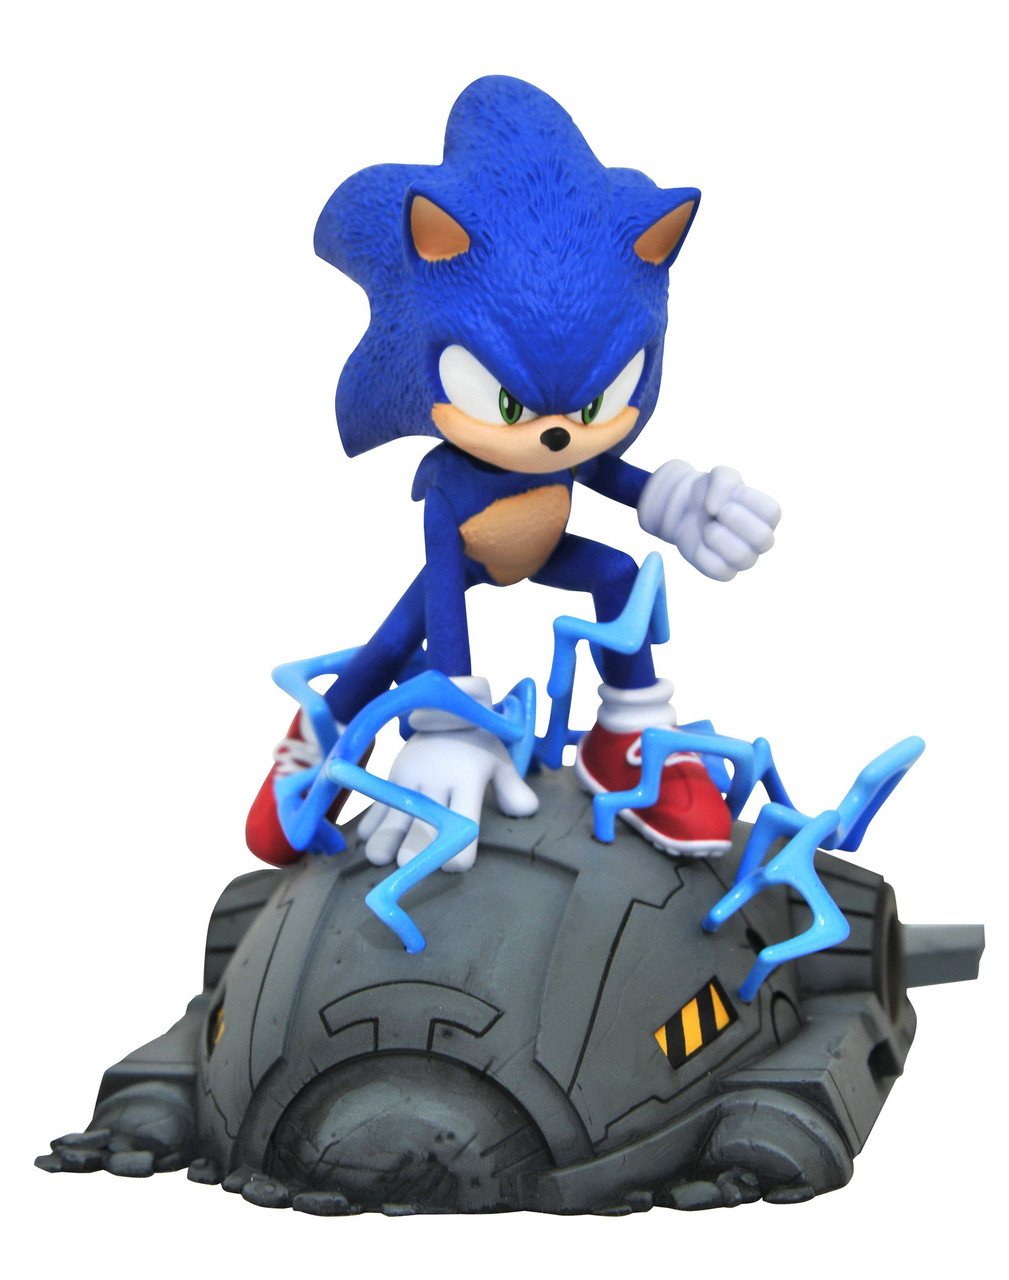 Sonic The Hedgehog Sonic 16 Statue Movie Version Diamond Select Toys Toywiz